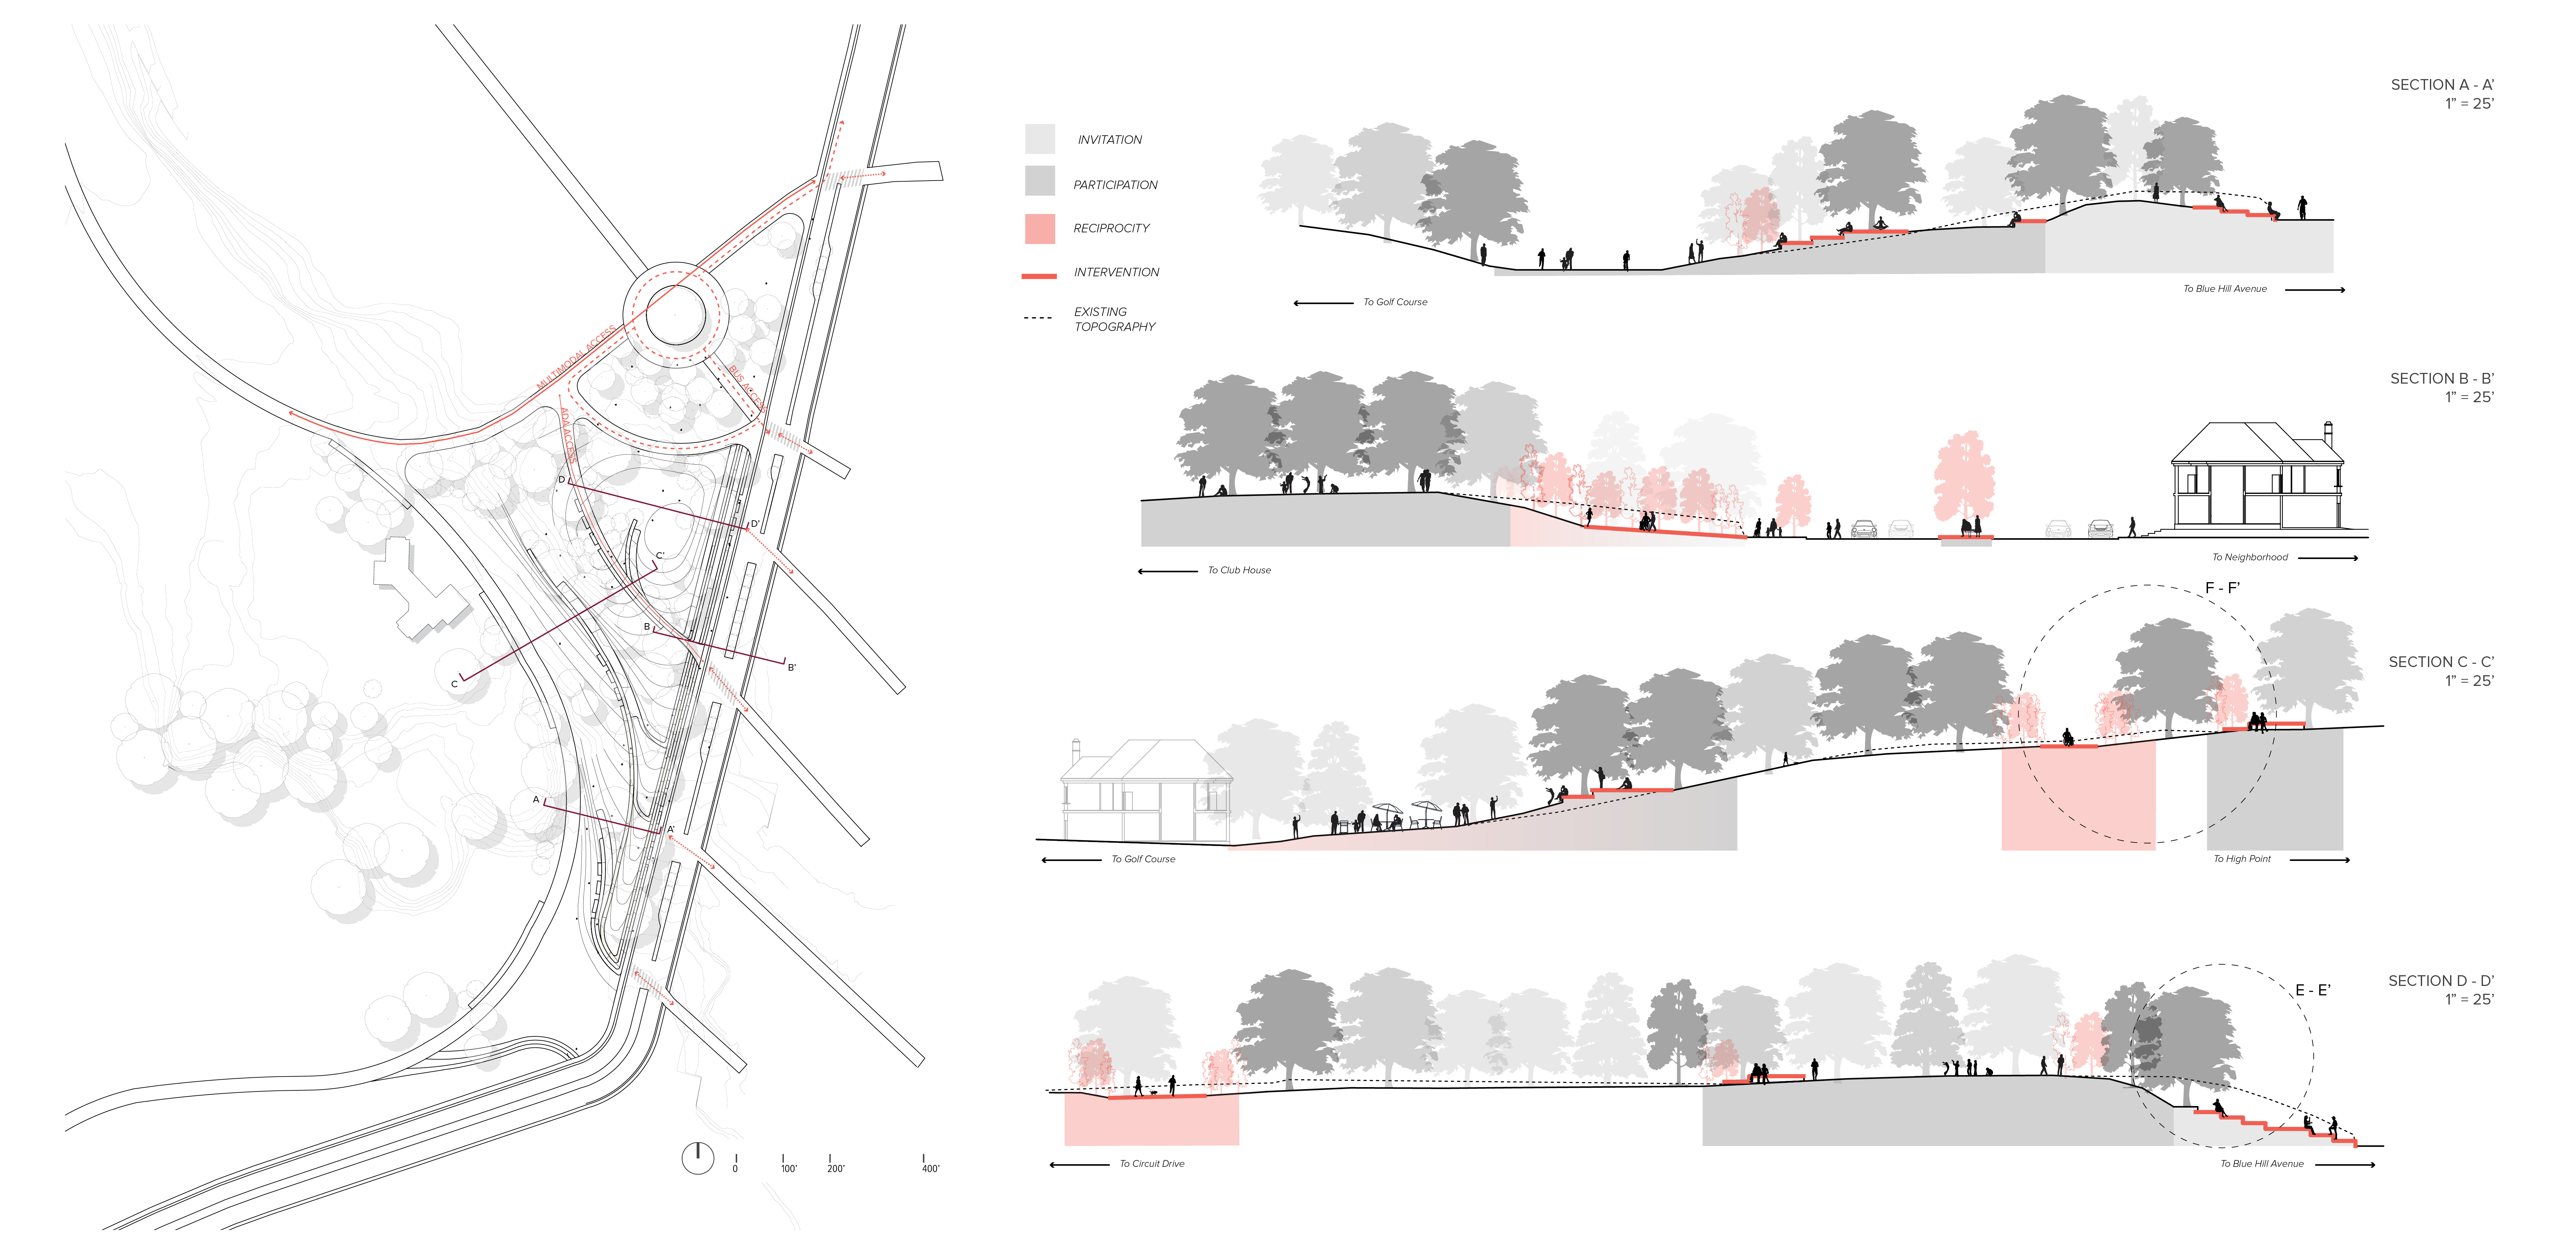 Focus Area Site Design - Grading Plan and Sections